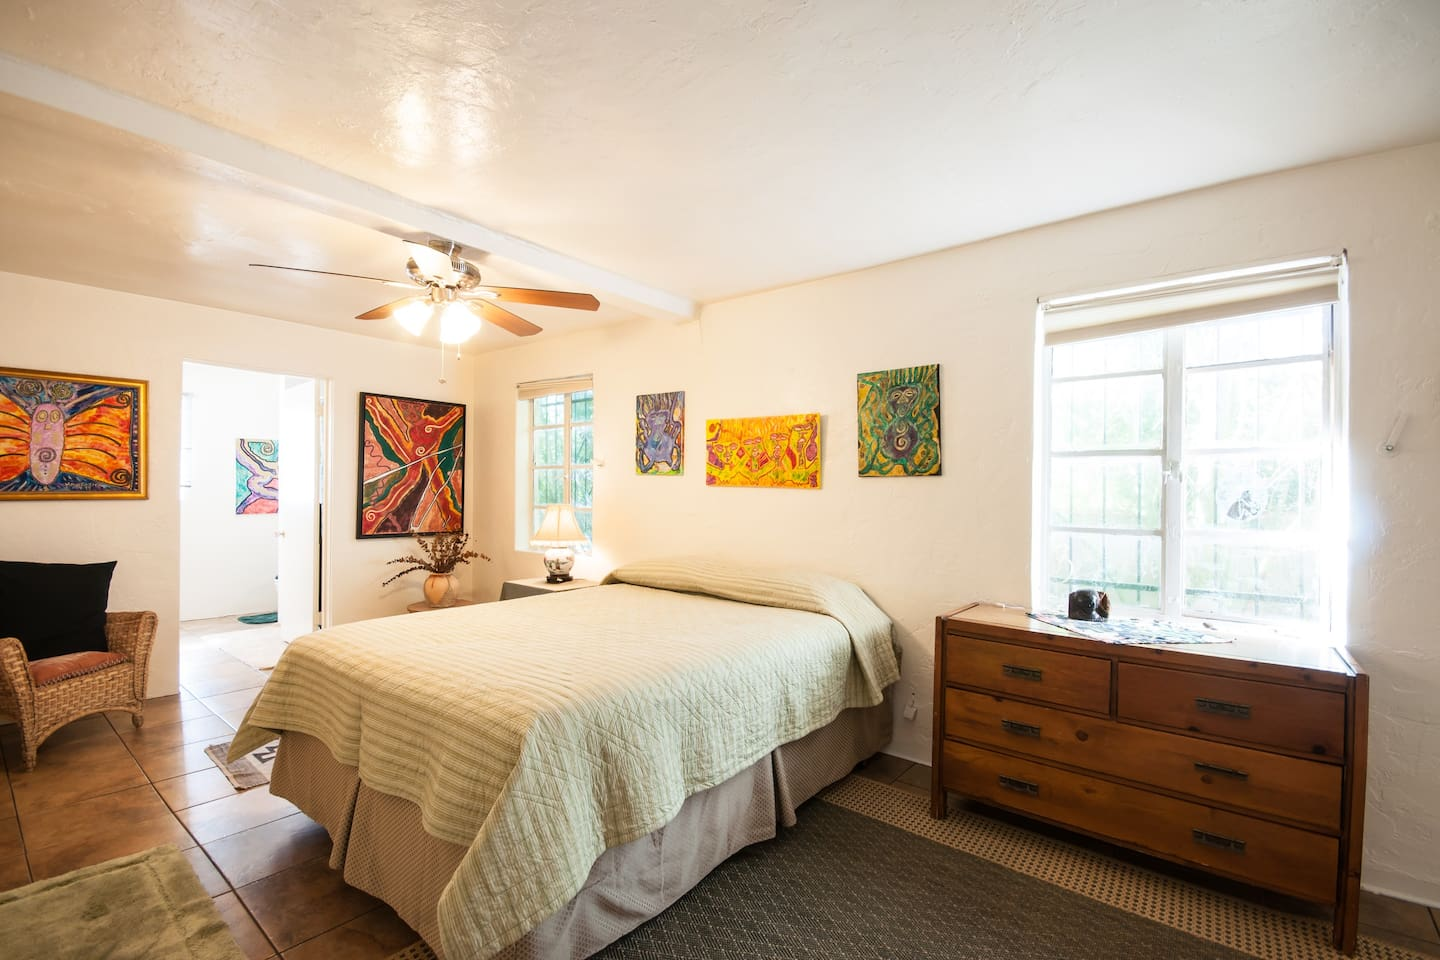 This is your wonderful room with a huge private bathroom and queen size new sealy posturpedic mattress.  It's a very large room, big enough for two queen size beds!